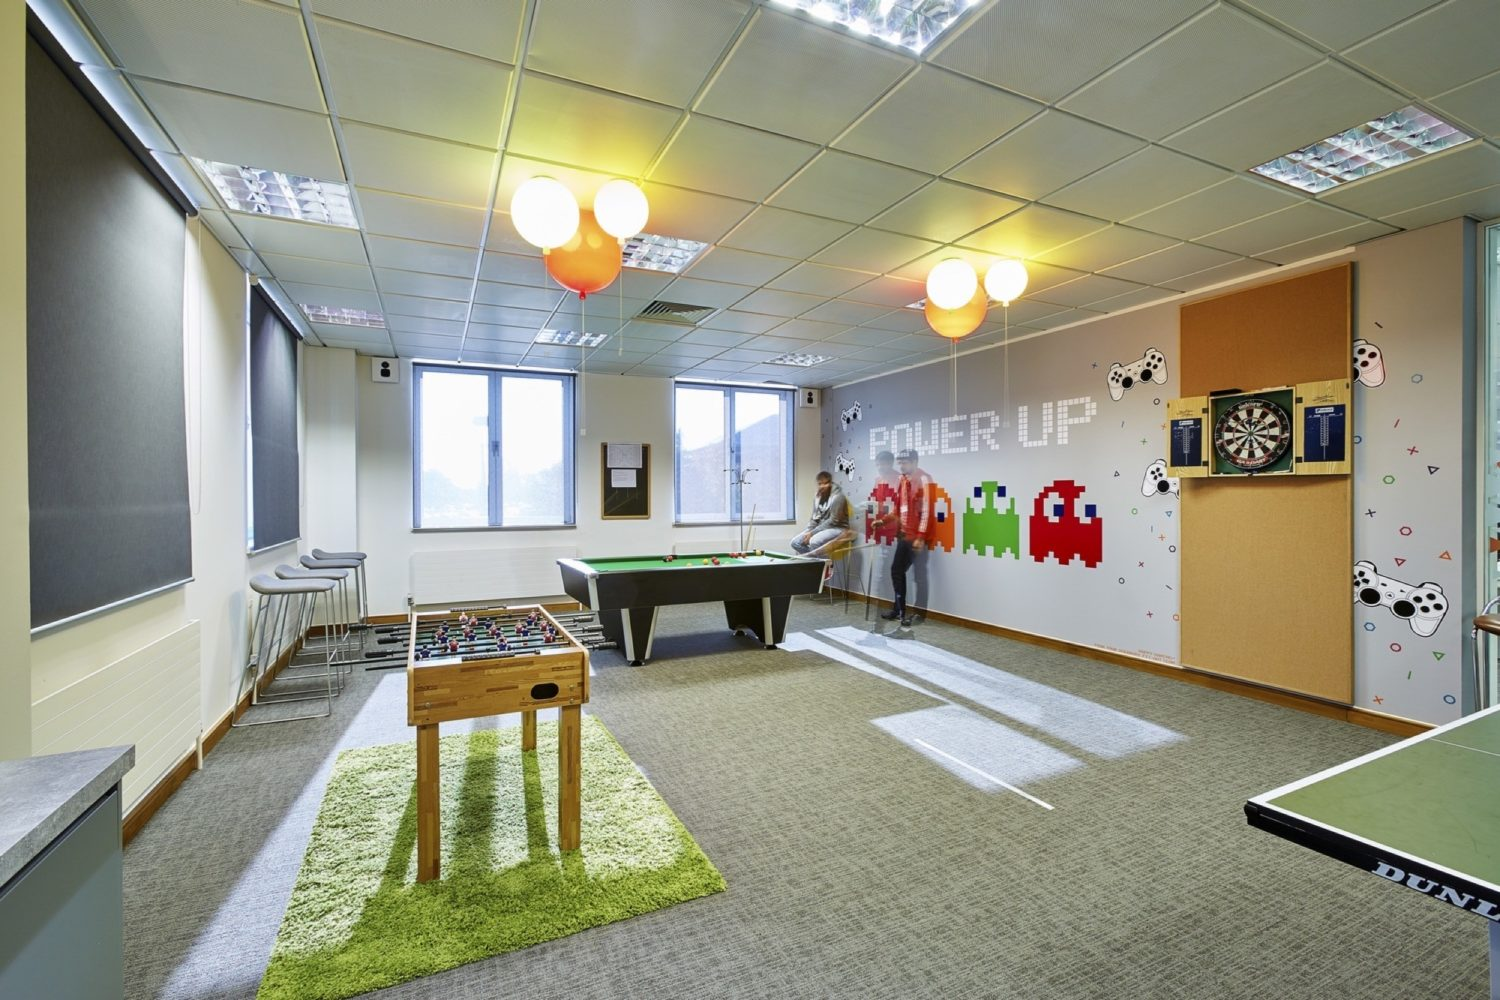 IHG games room in office fit out